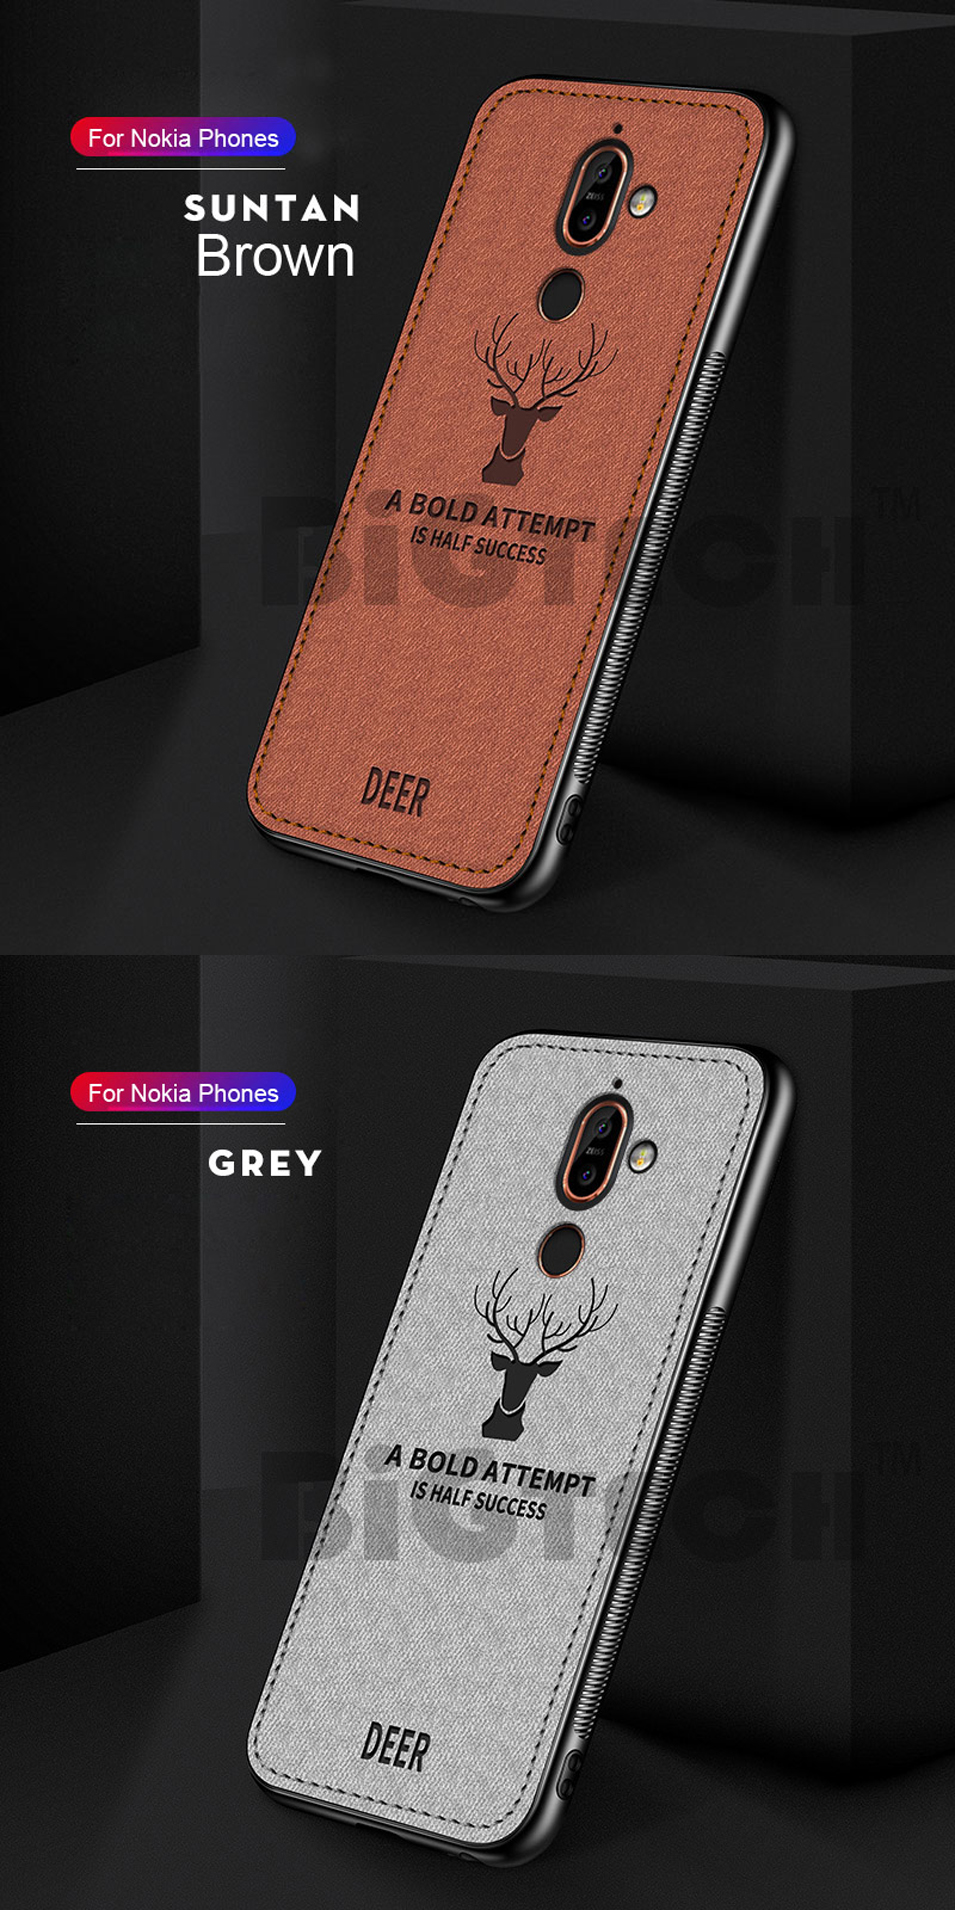 DEER Patterned Classic Retro Cloth Cases for Nokia 7 Plus x7 x6 x5 8 Sirocco Case Soft Back Cover For Nokia X7 X6 X5 Shell Coque